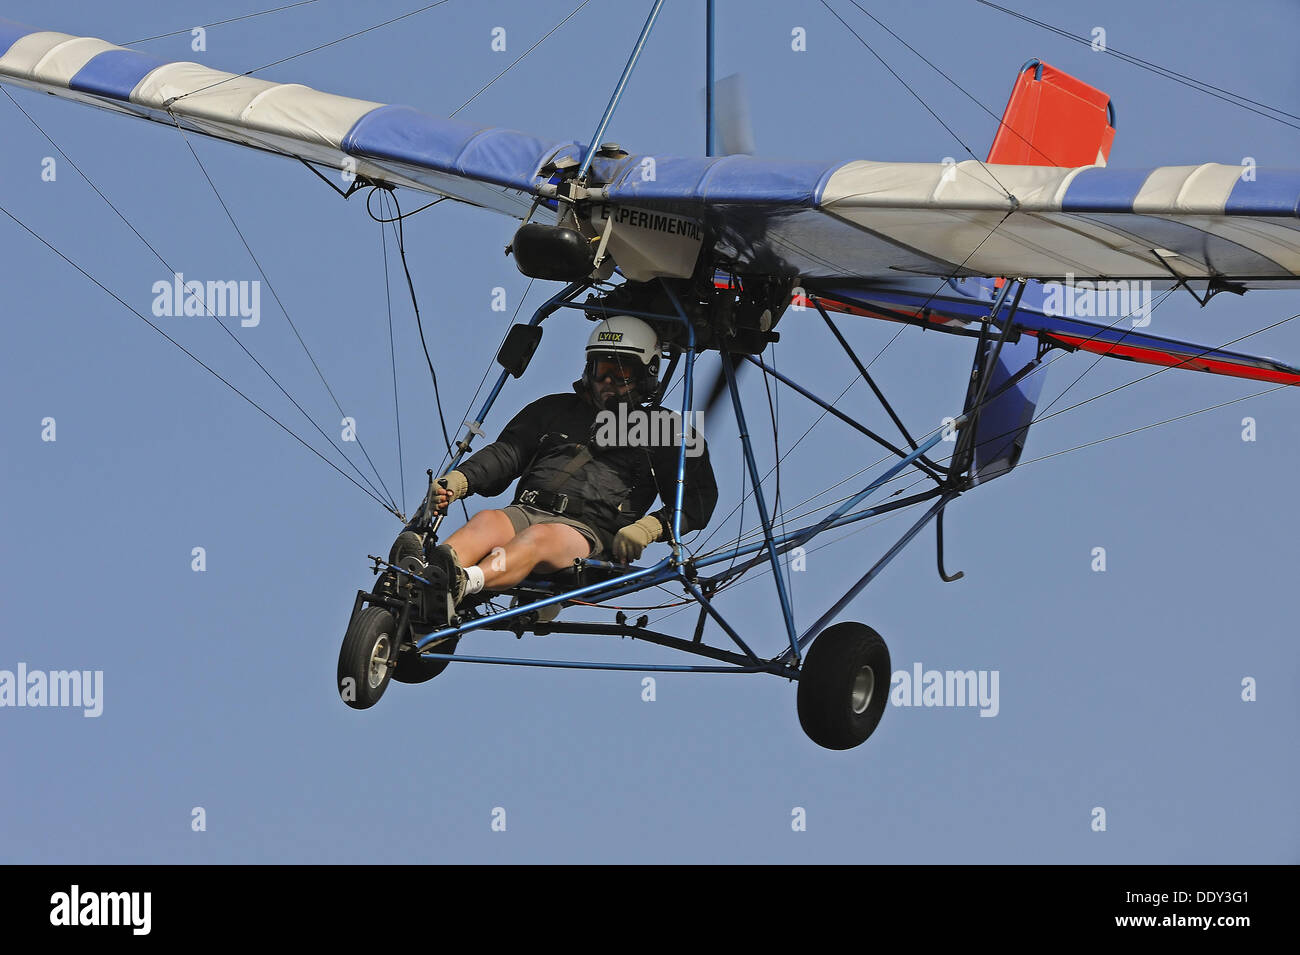 Single Seat Ultralight Aircraft Coming In For Landing, Camarillo,  California, USA